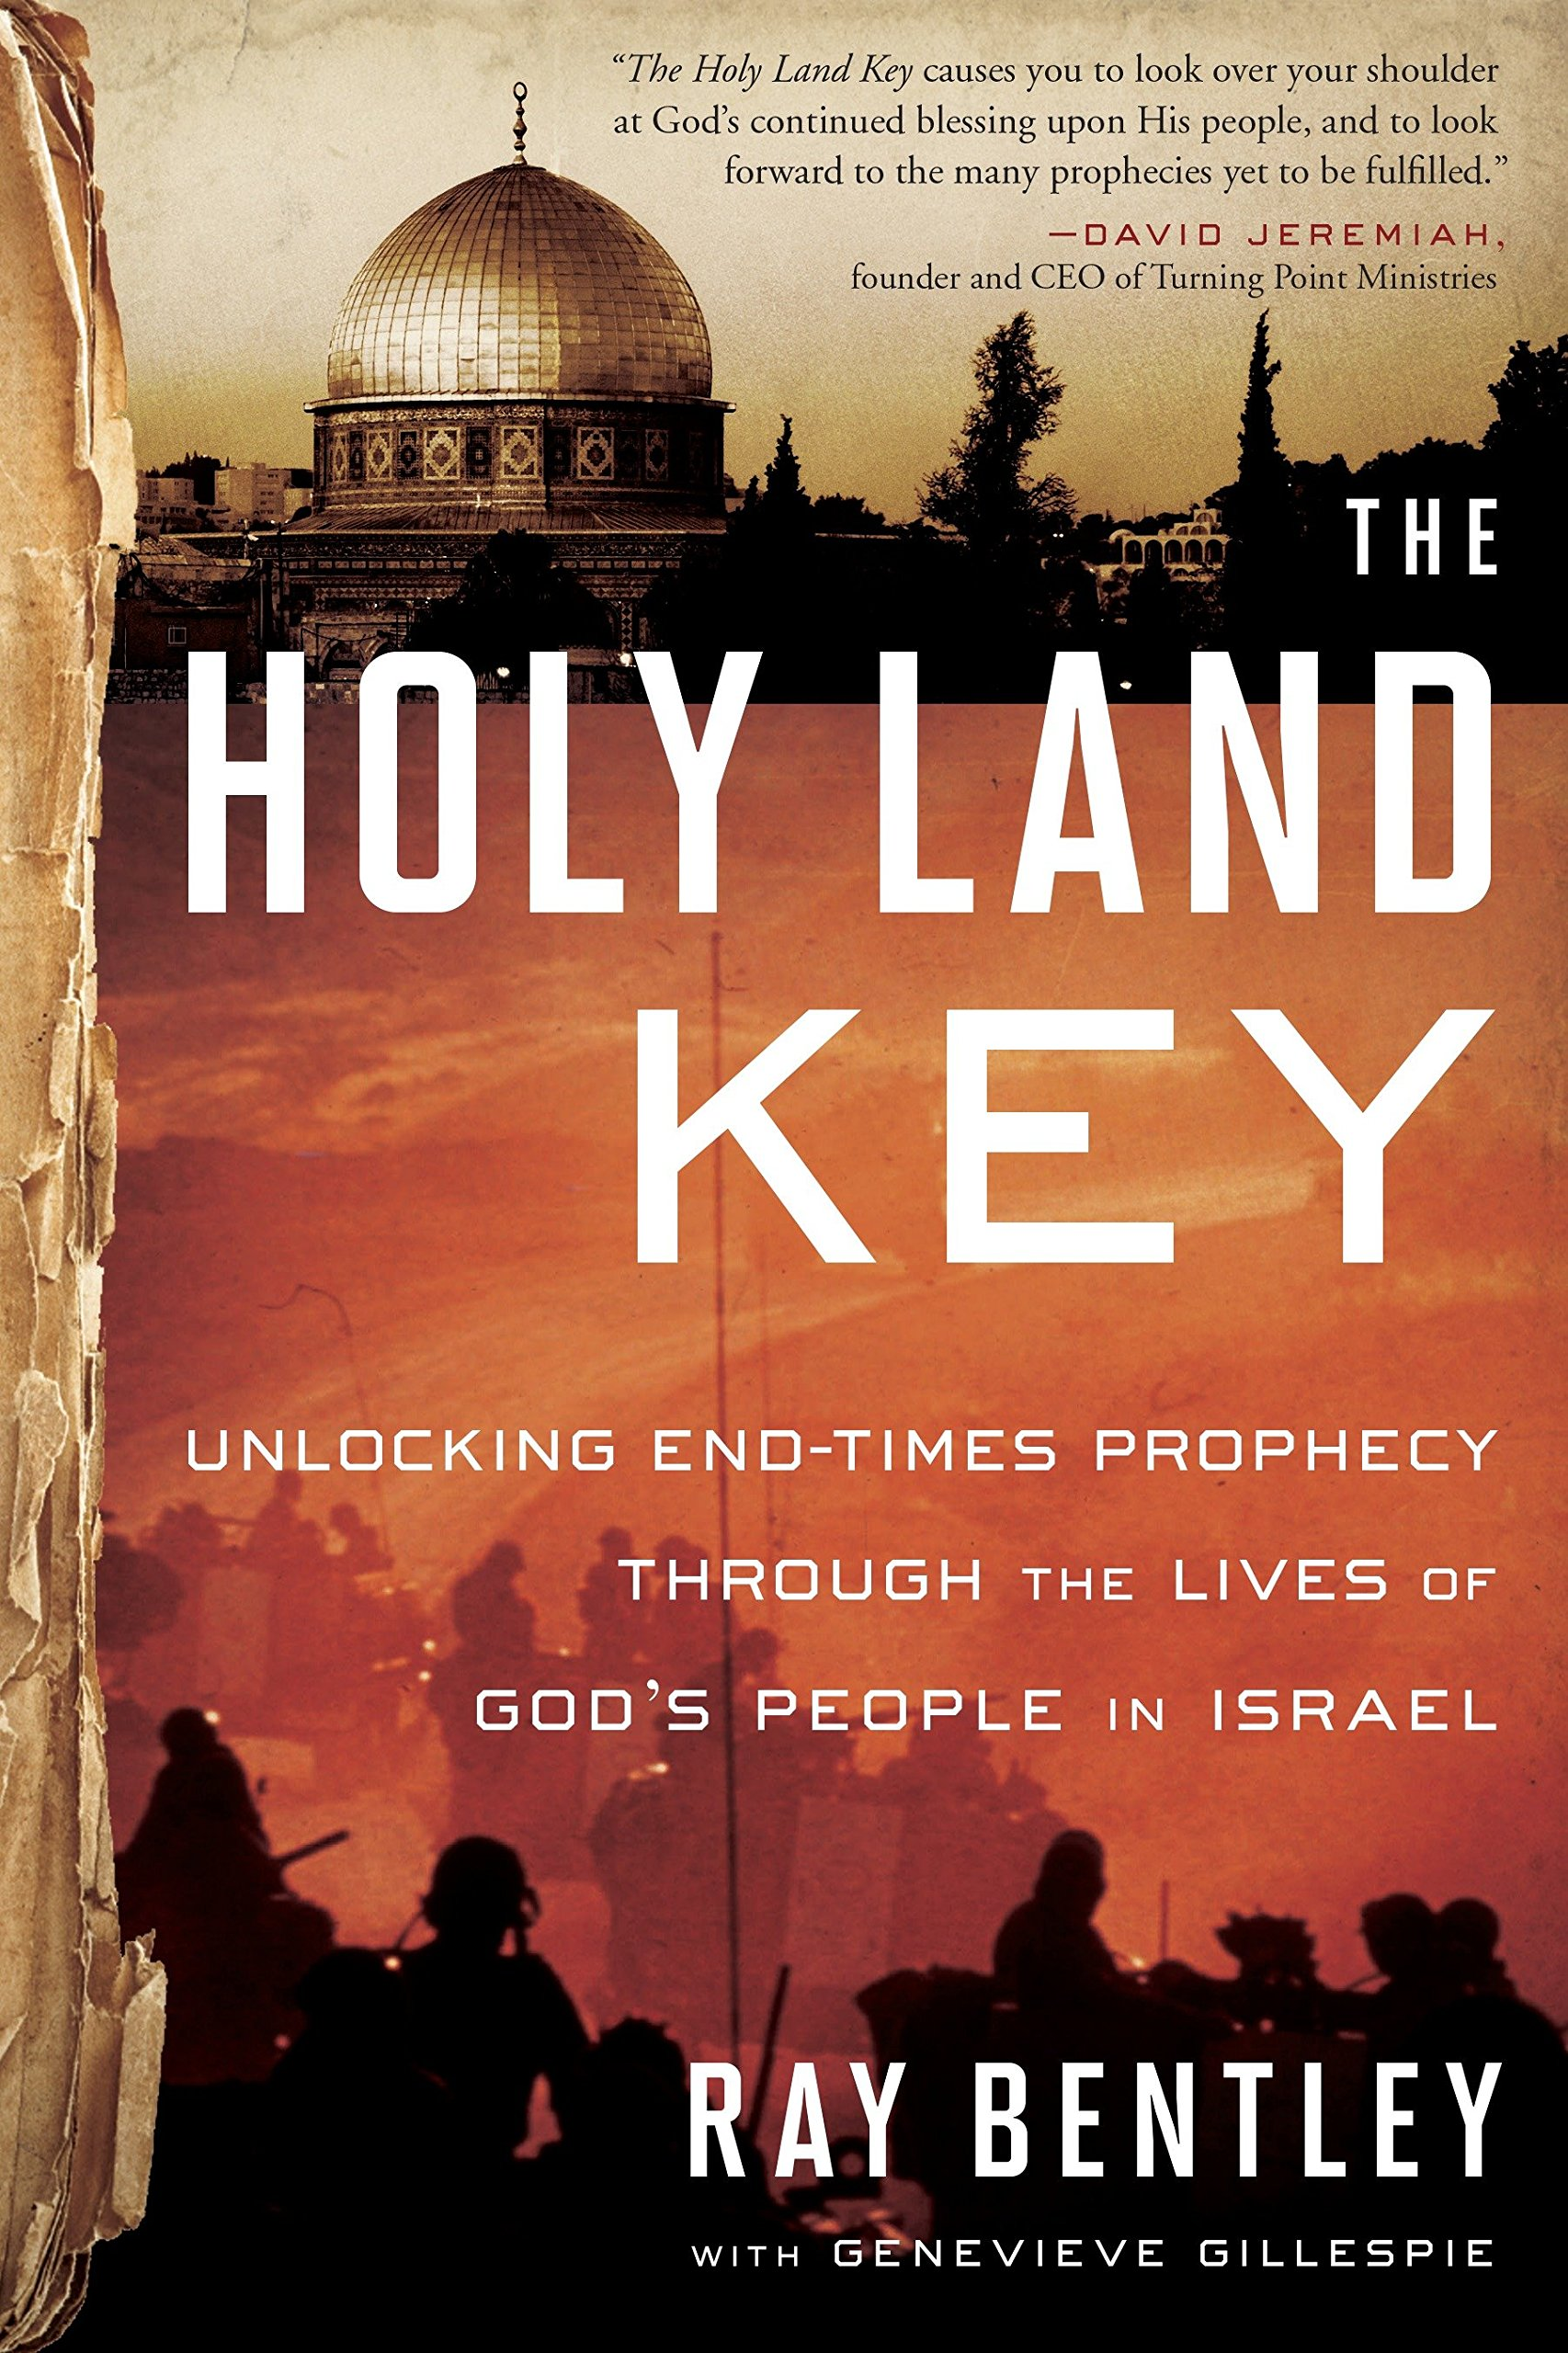 The Holy Land Key Unlocking End Times Prophecy Through The Lives Of God S People In Israel Bentley Ray Gillespie Genevieve 9780307732064 Amazon Com Books Reading the bible again f. the holy land key unlocking end times